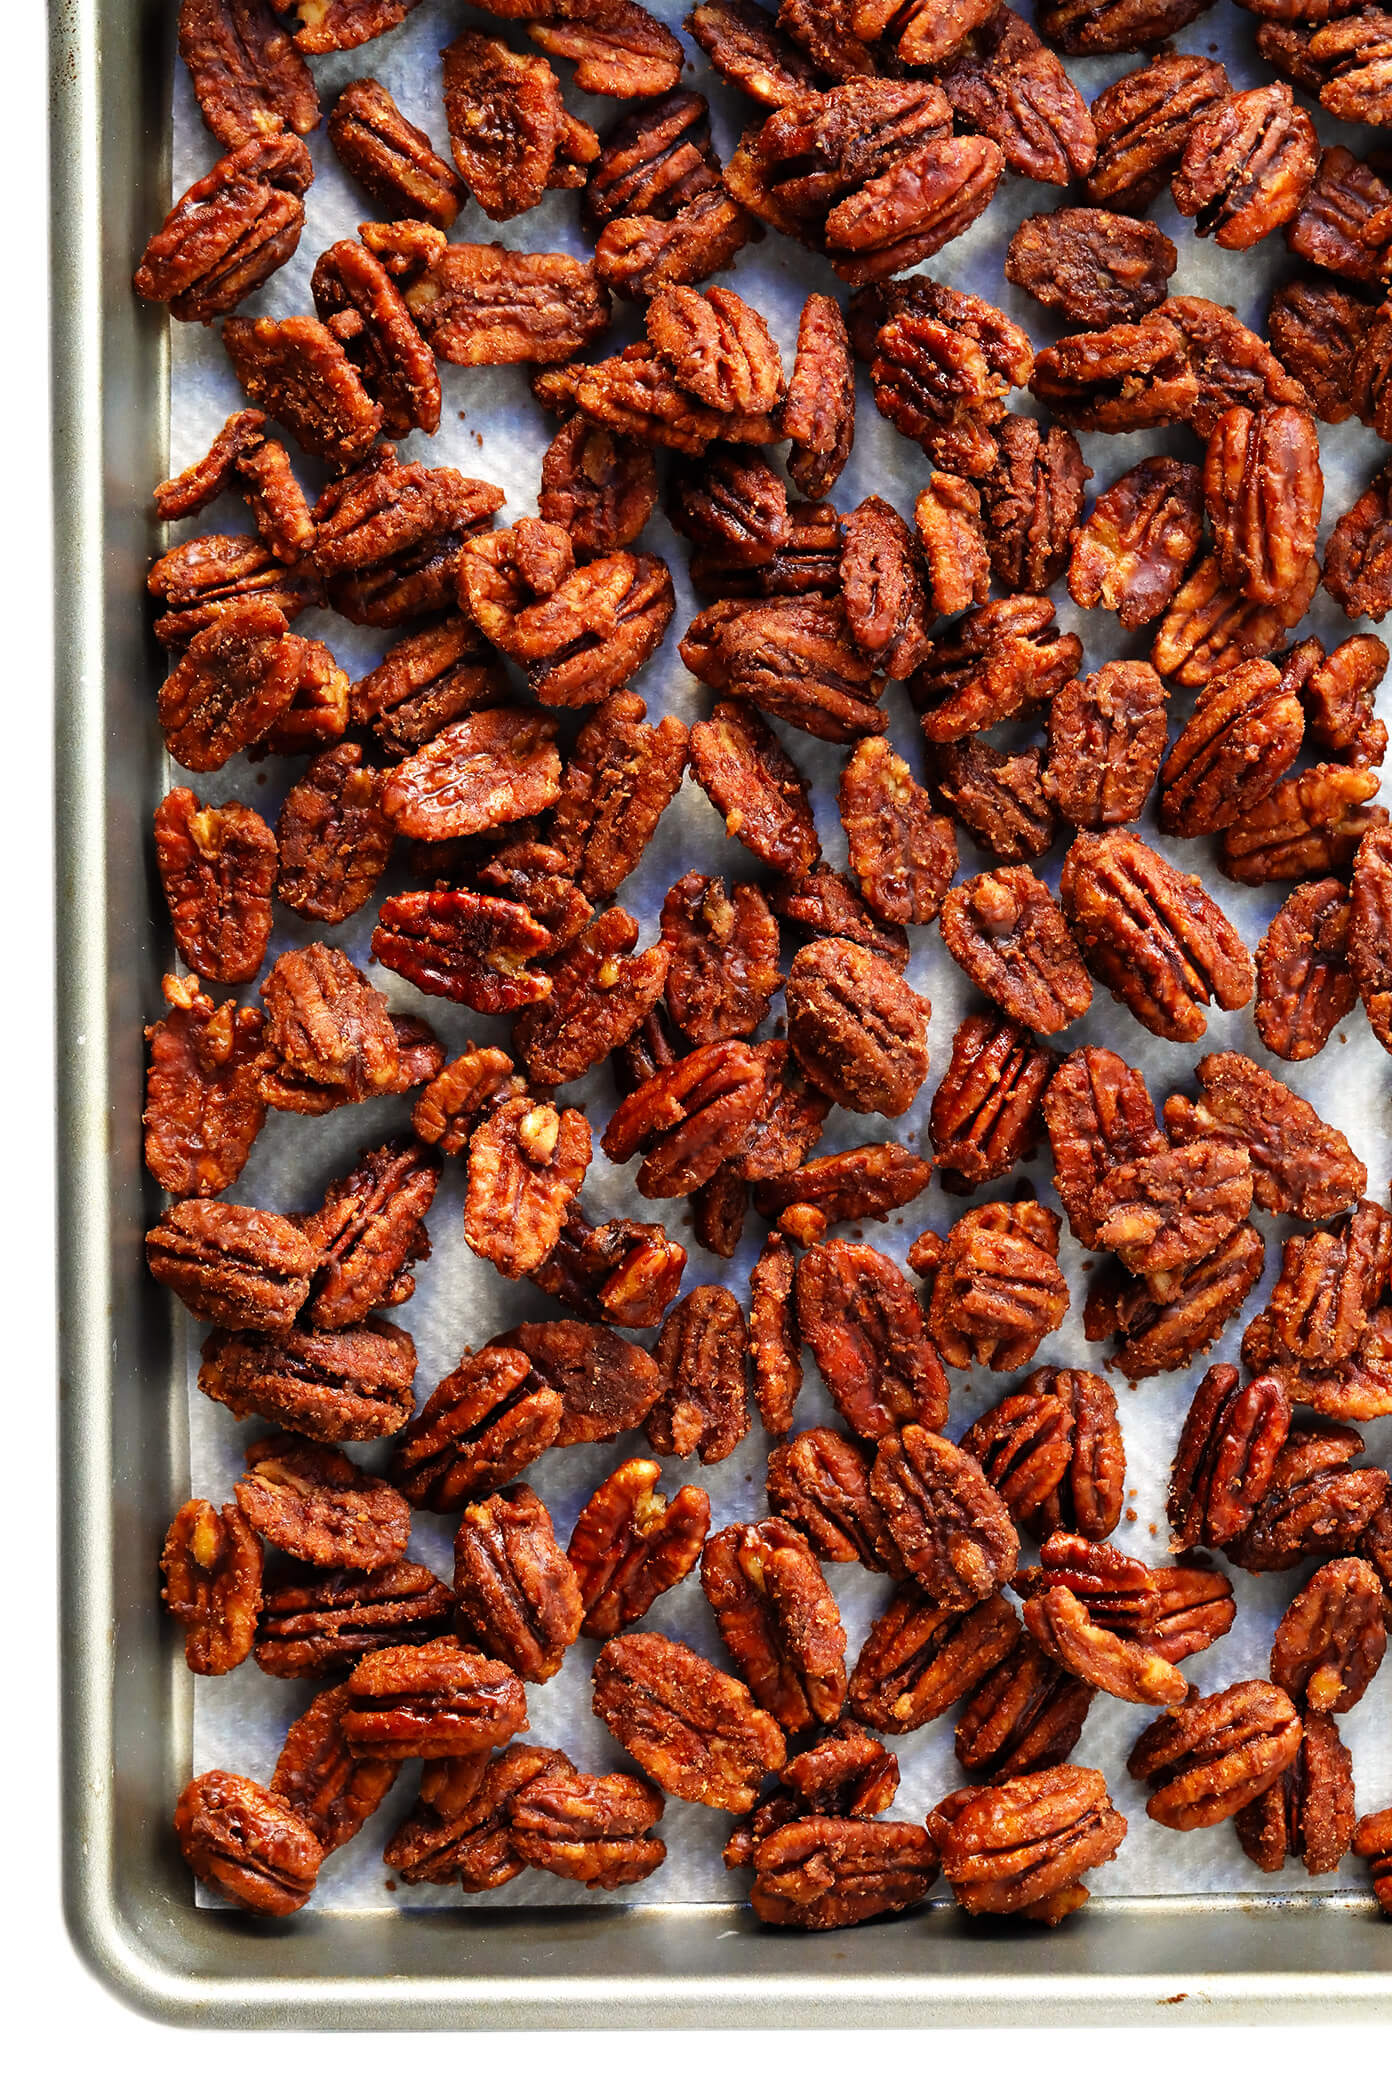 Naturally-Sweetened Maple Syrup Candied Pecans Recipe